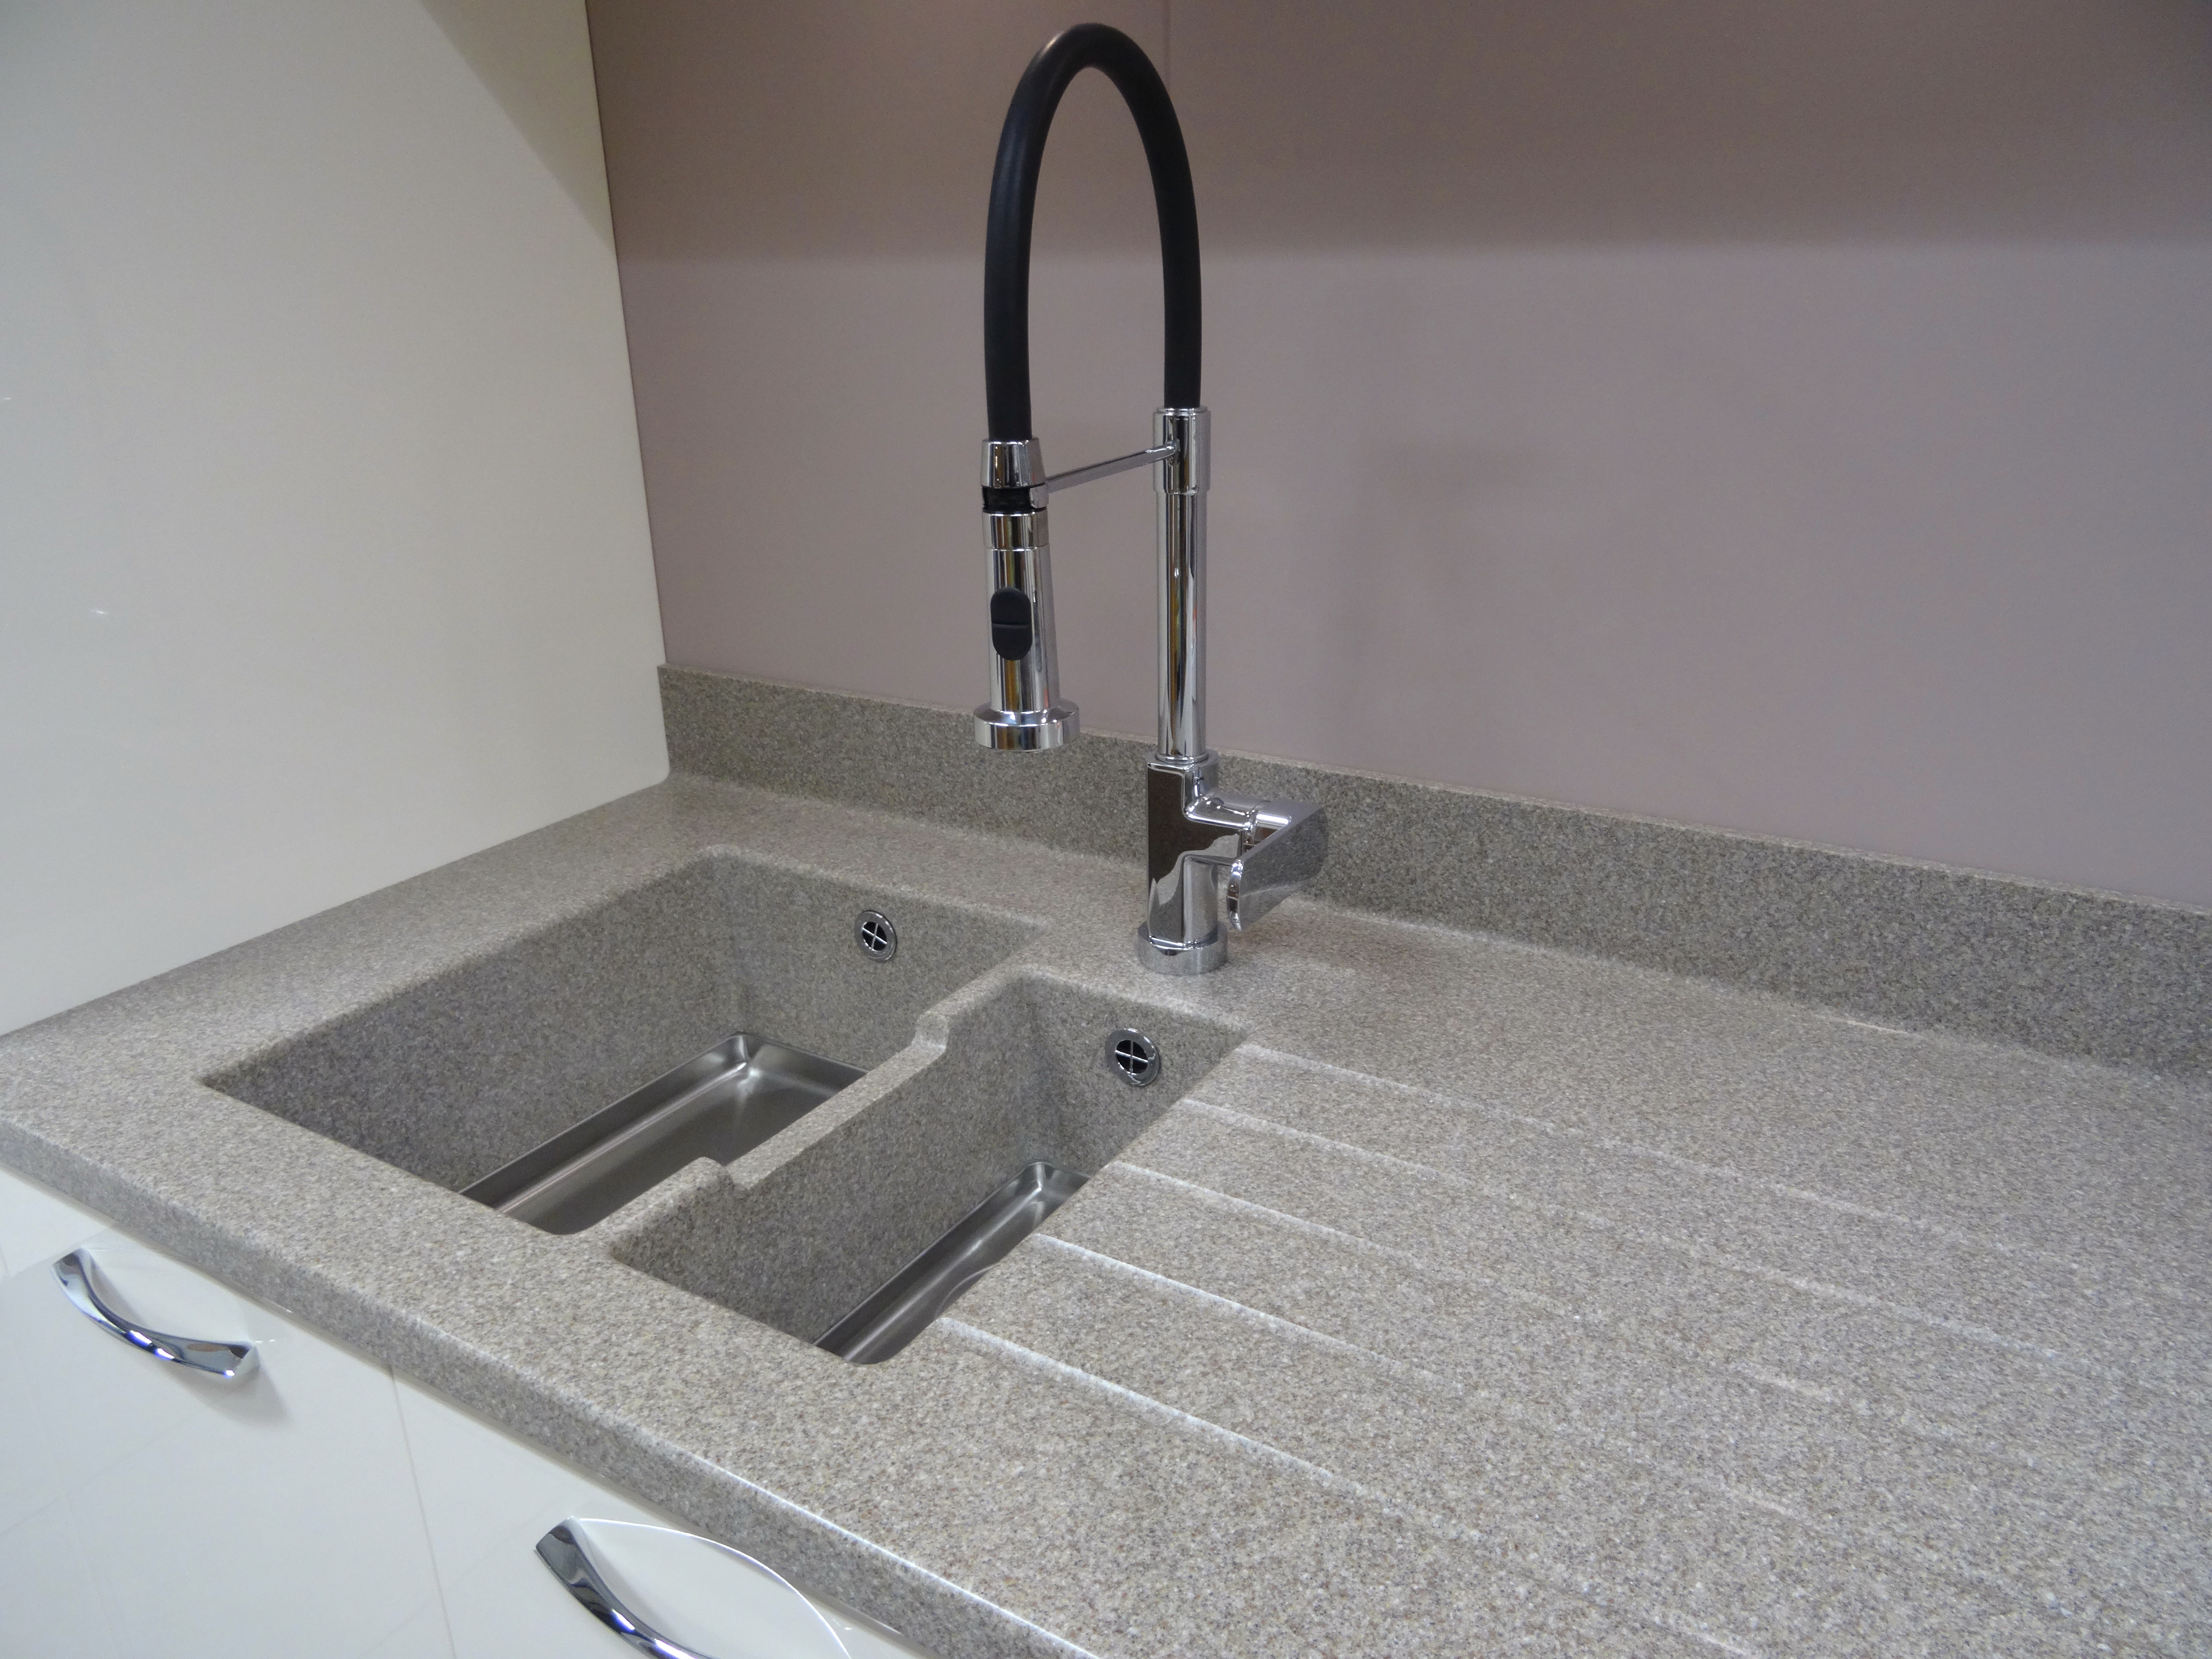 How To Restore The Coating For A Composite Sink Hunker